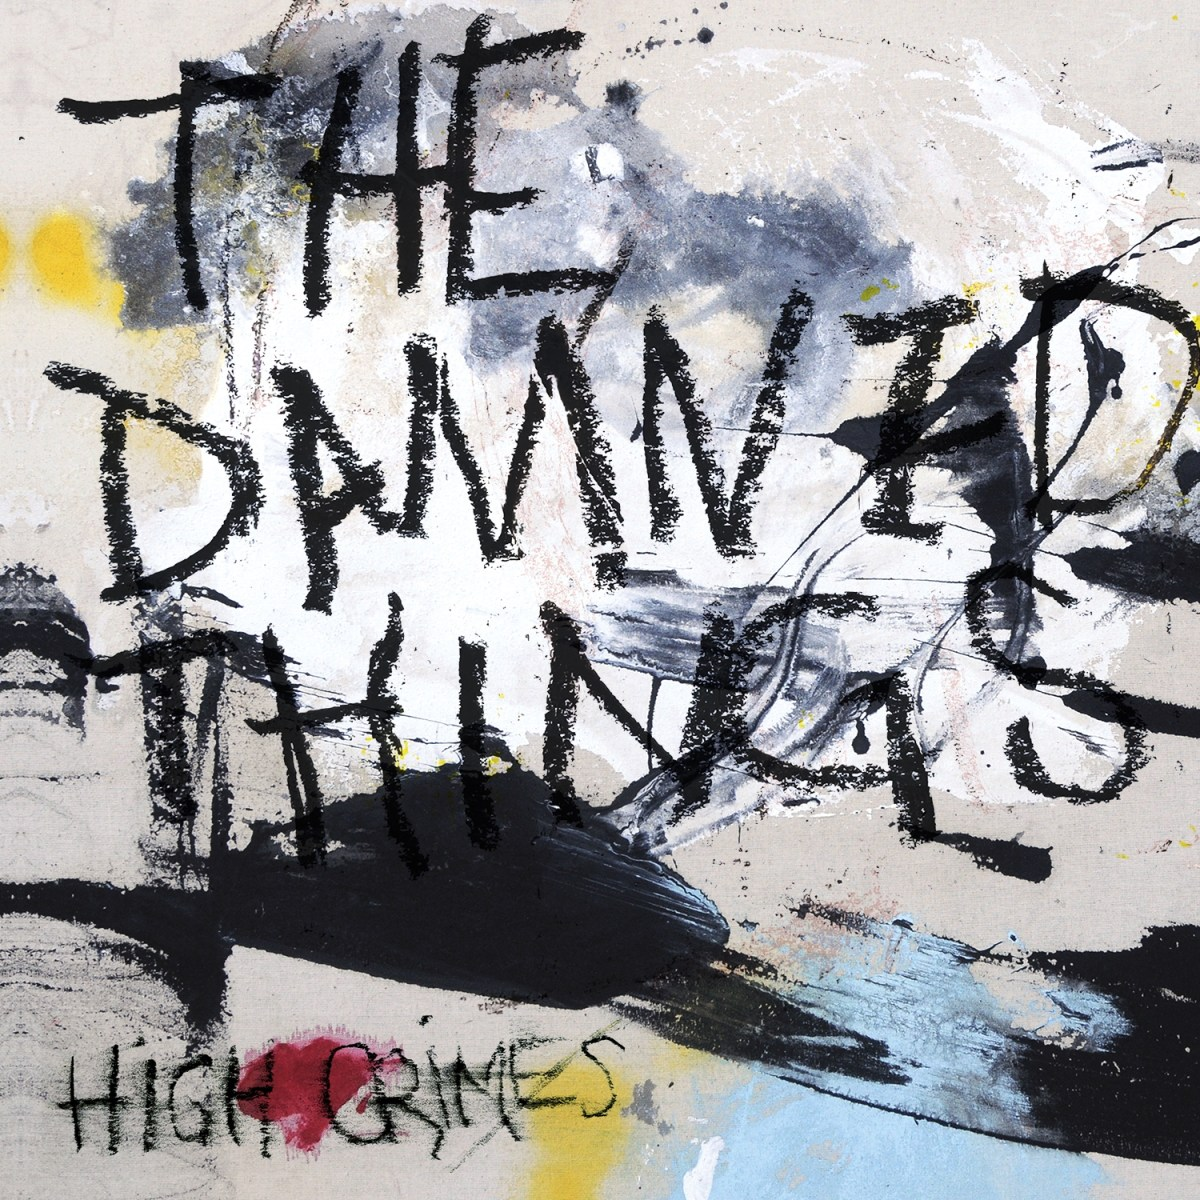 The Damned Things - High Crimes (Album Review)